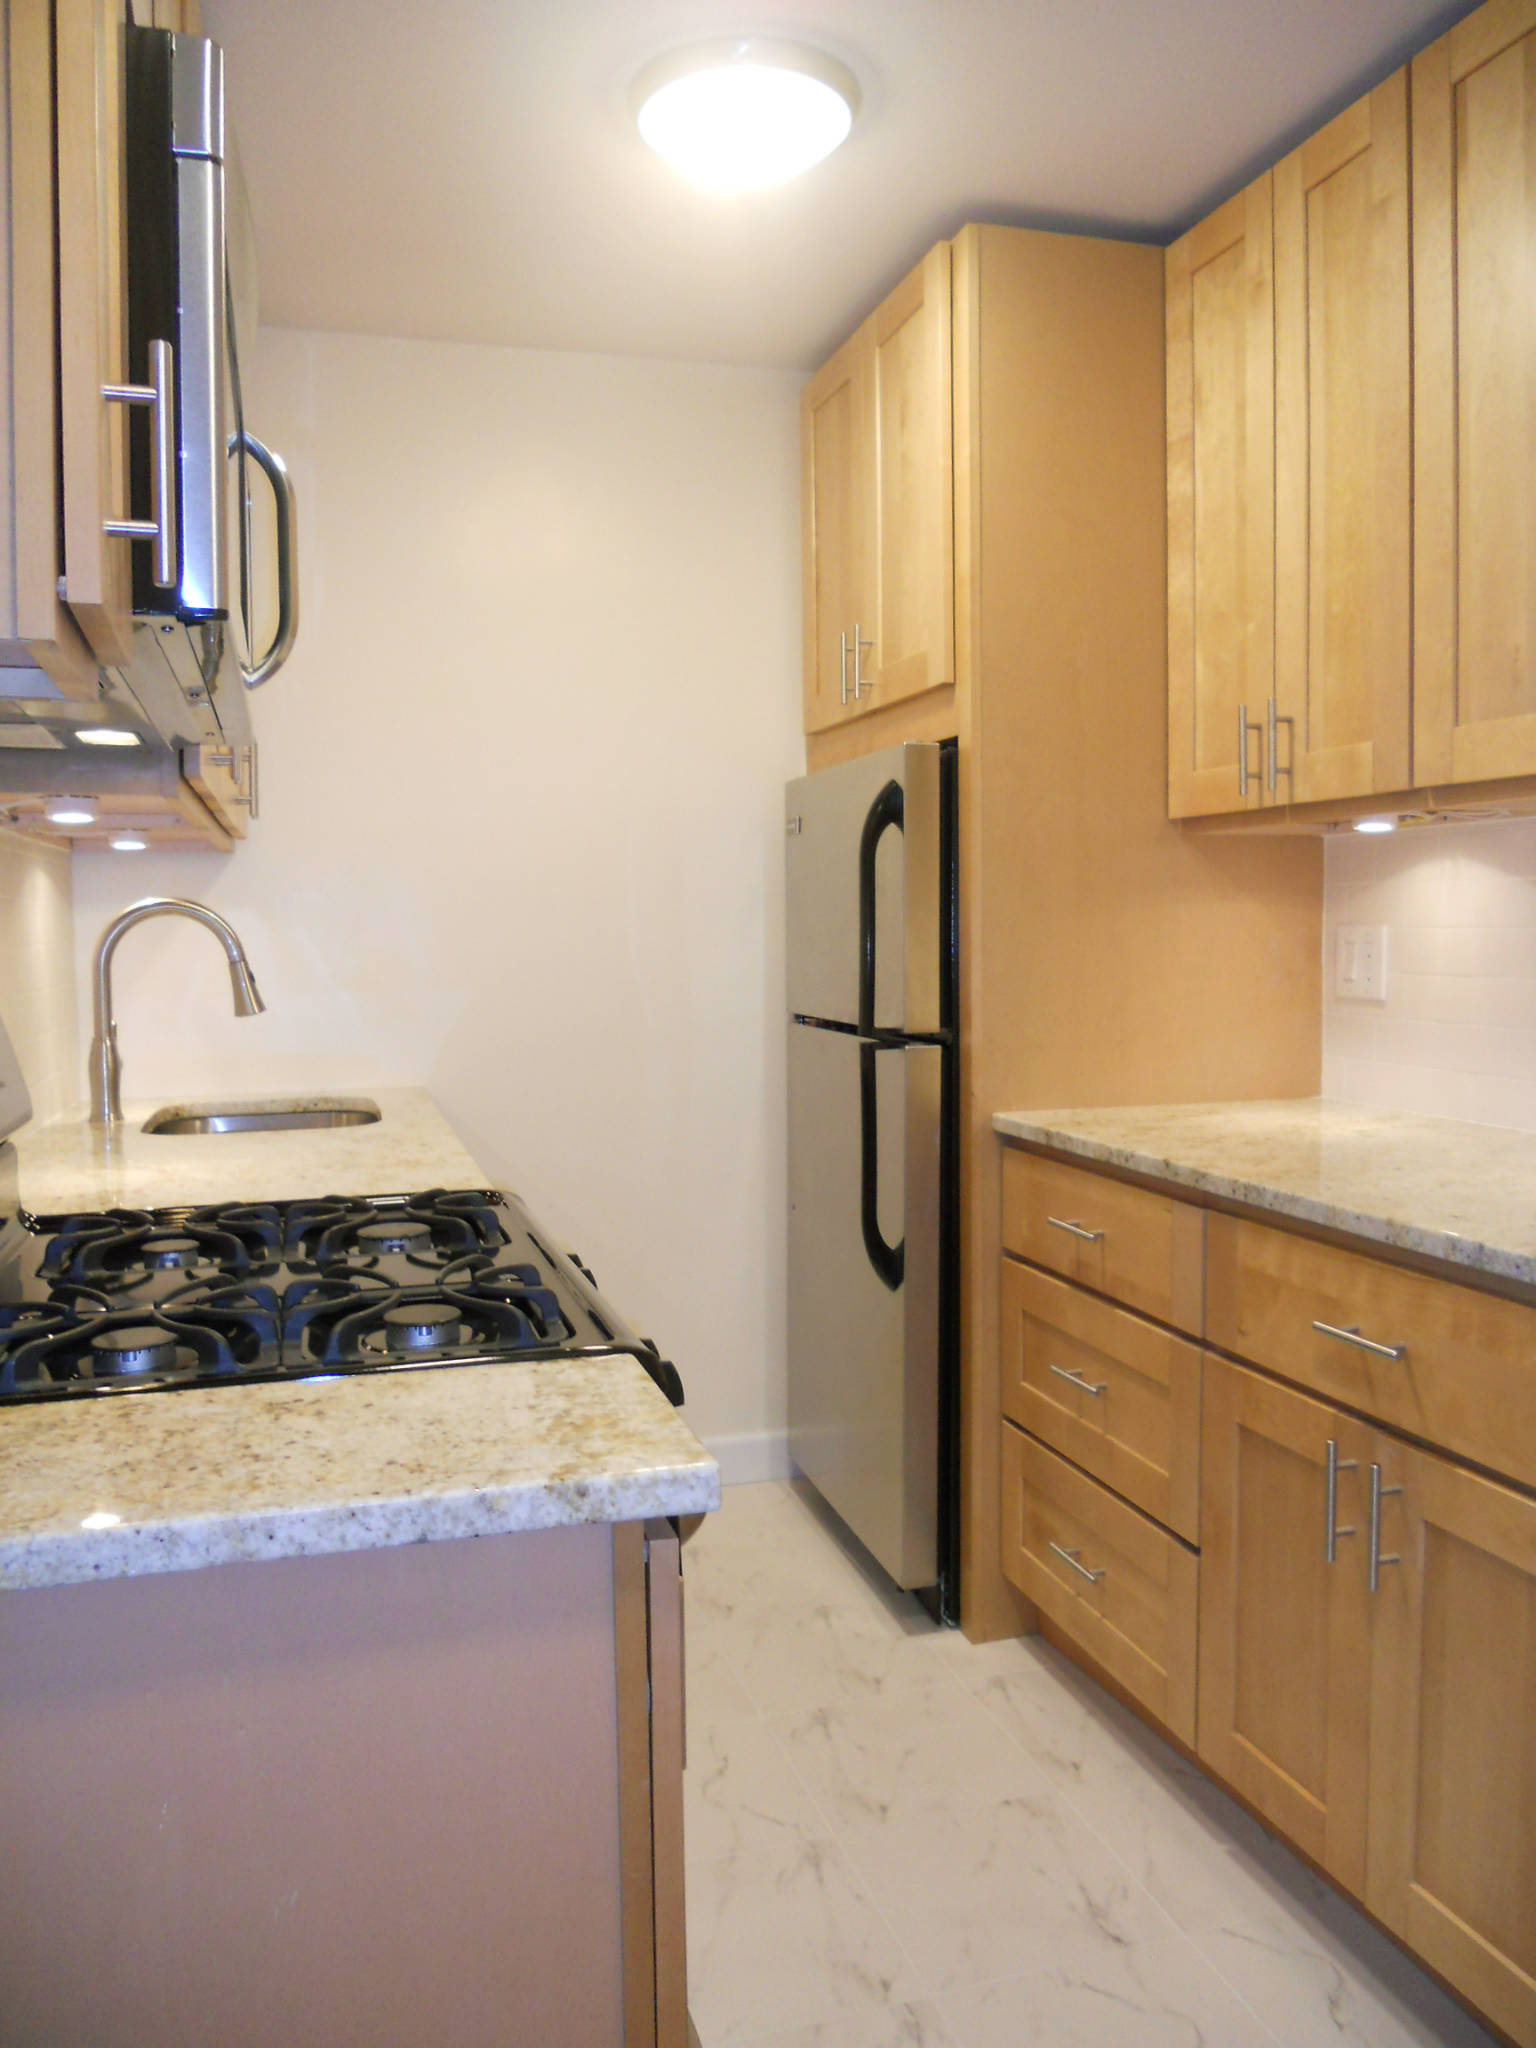 Renovated Kitchen for One Bedroom Condominium for Rent at Dorchester Towers